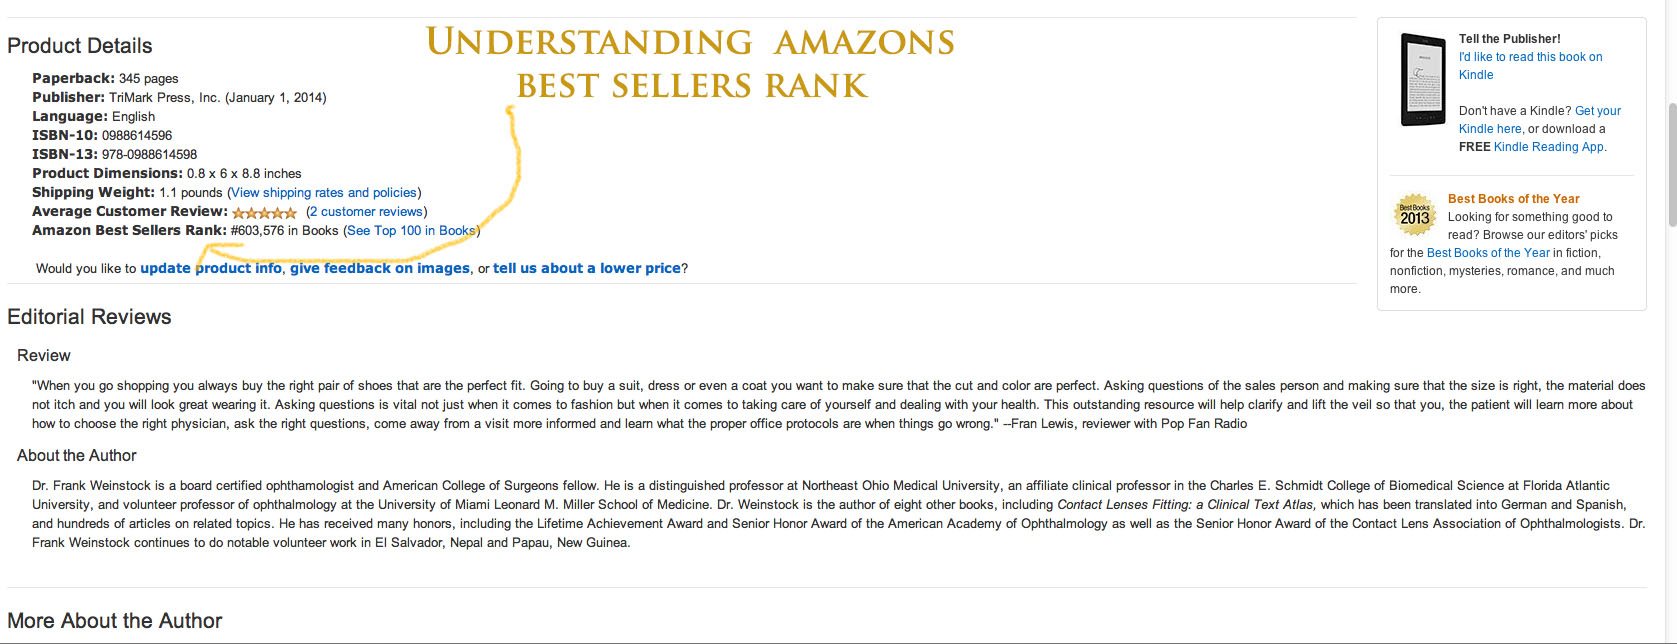 What do Amazon Best Sellers Ranks mean to authors